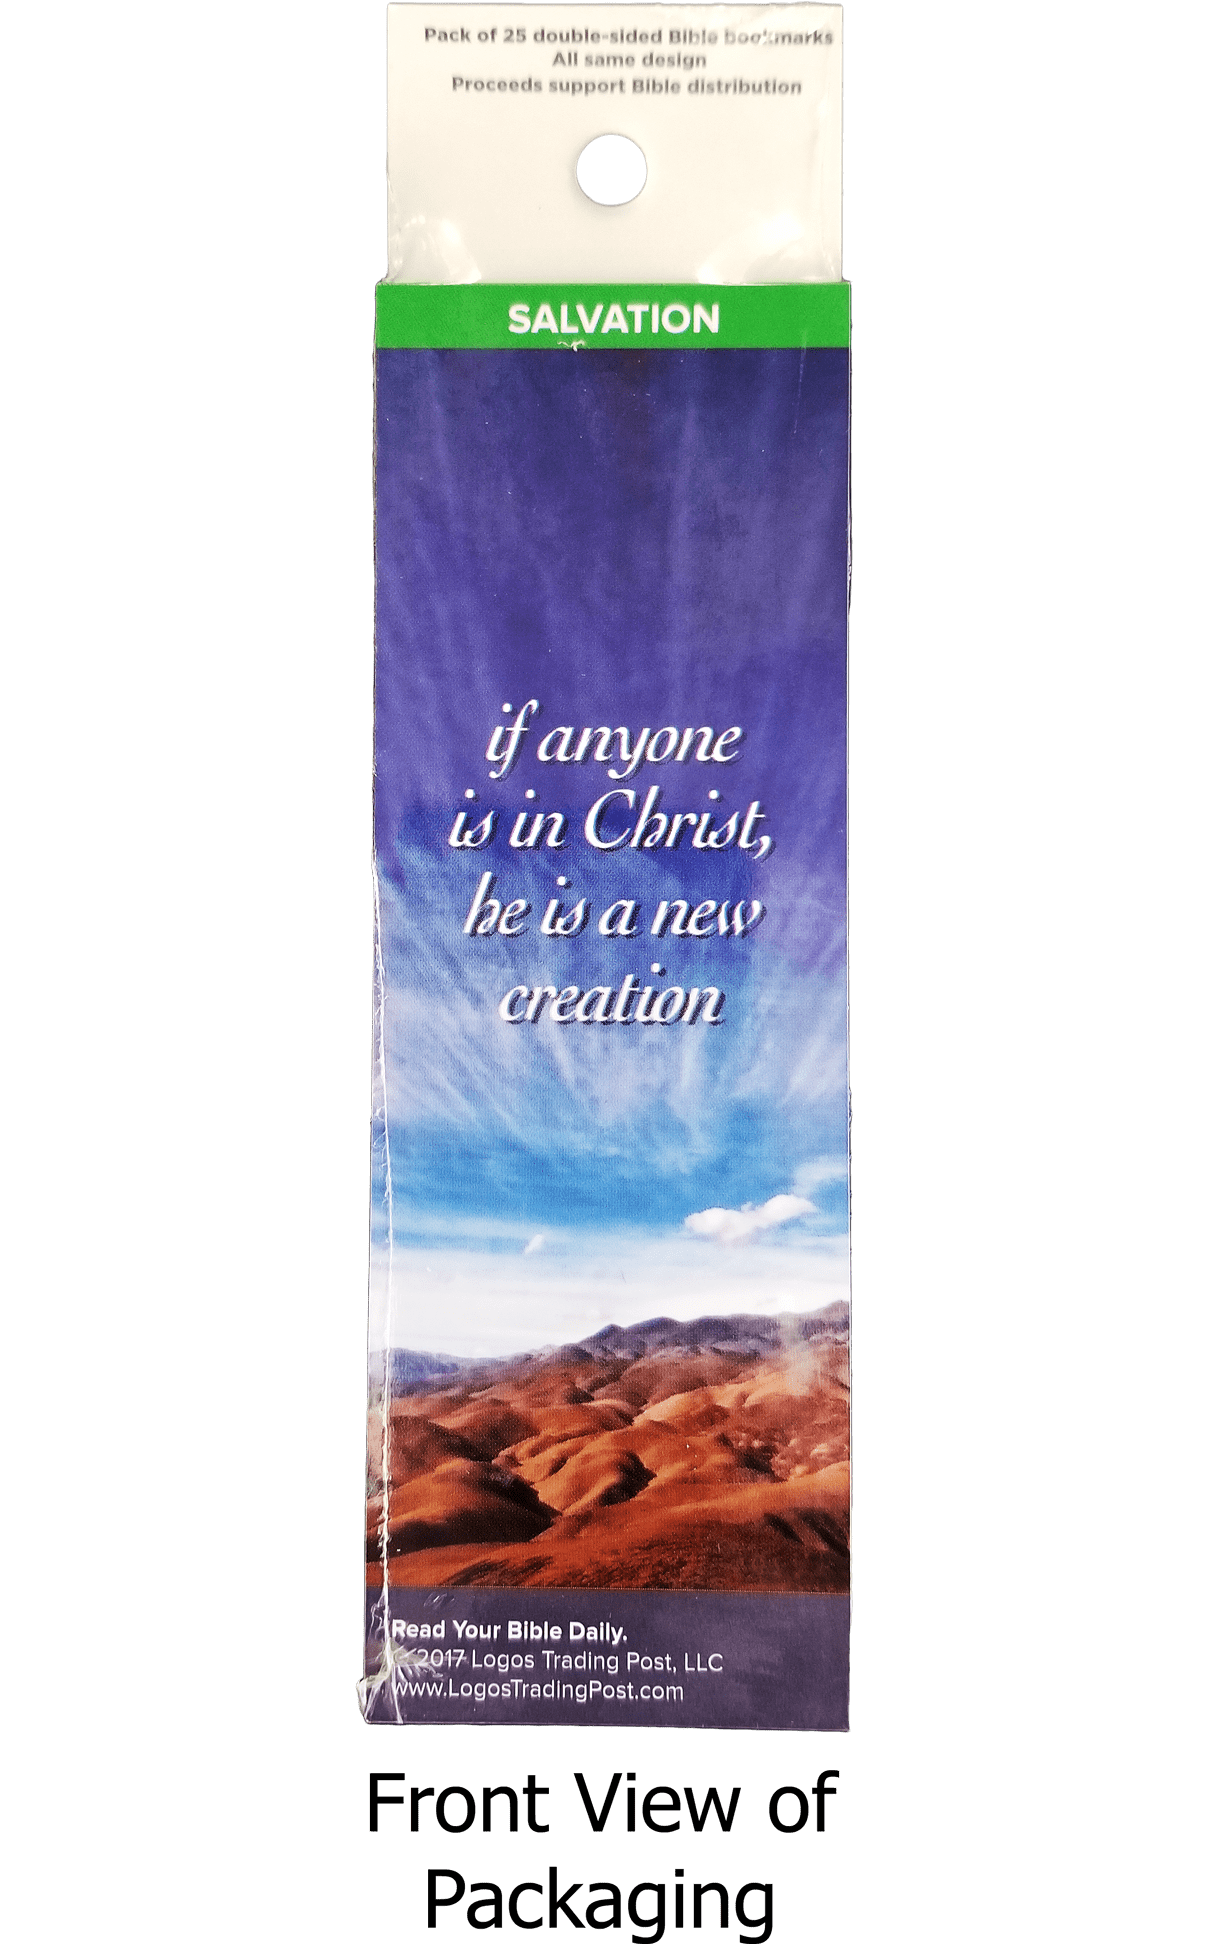 If Anyone if in Christ, He is a New Creation Bookmarks, Pack of 25 - Logos Trading Post, Christian Gift